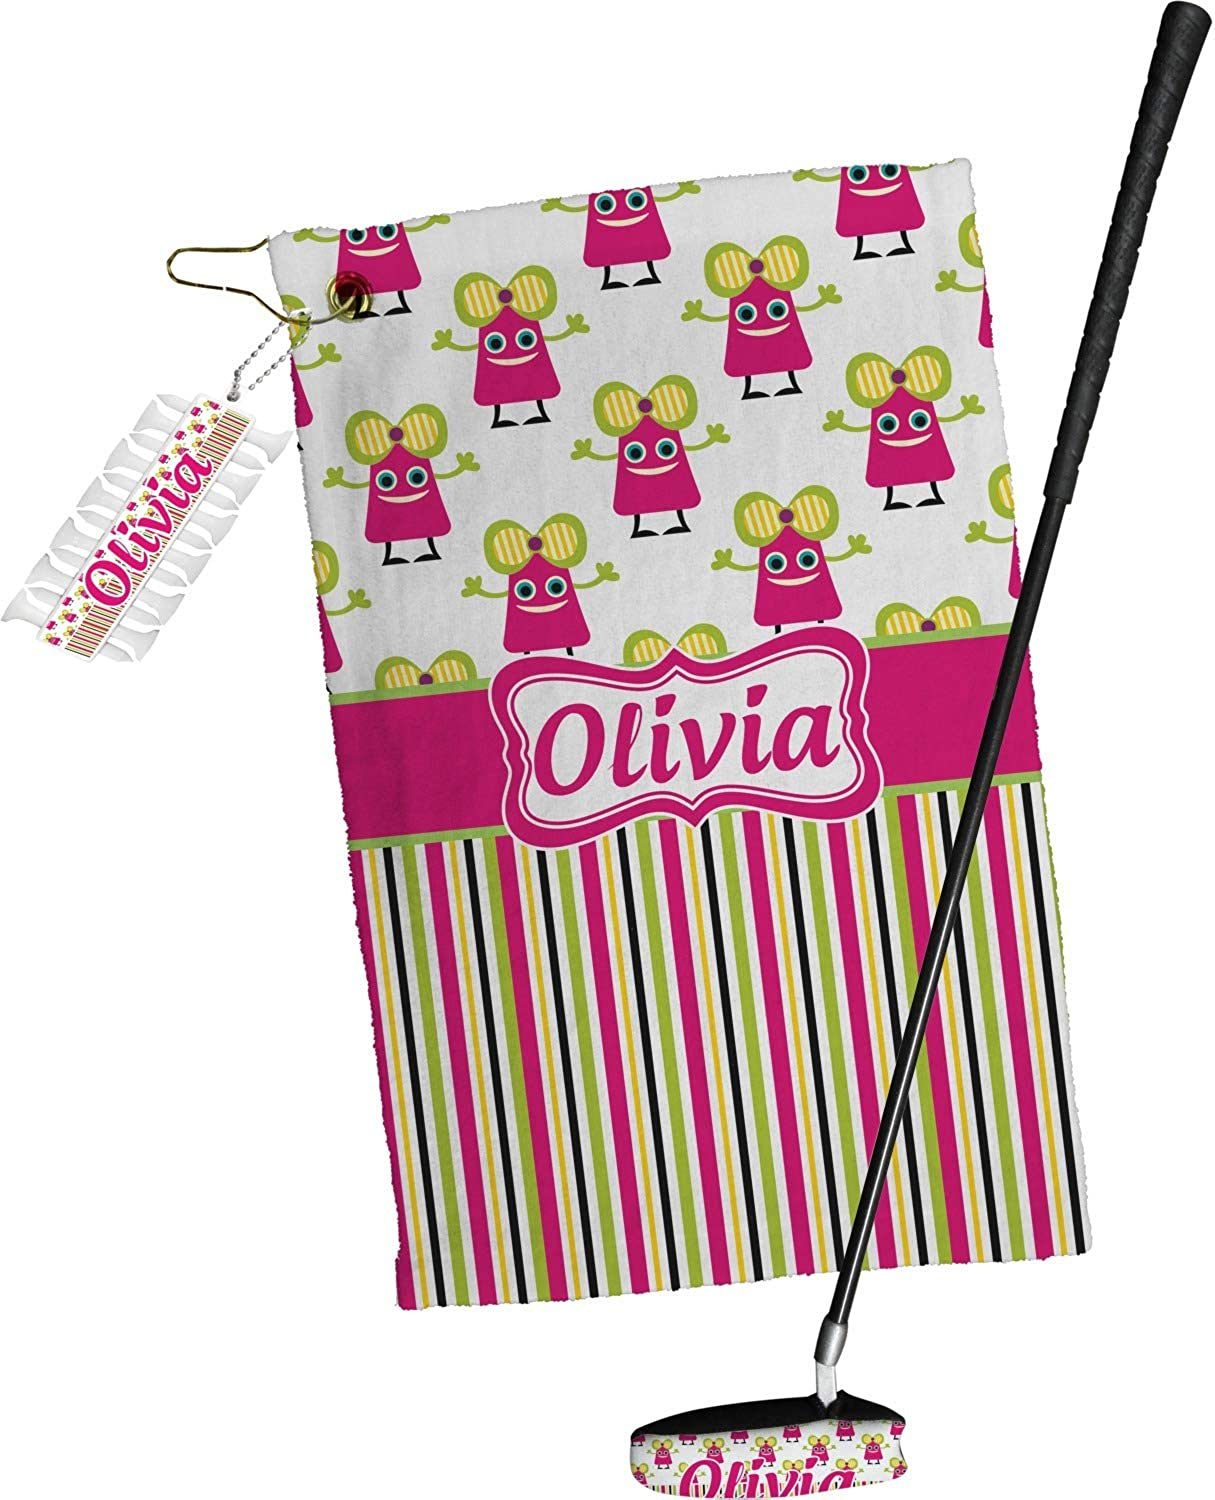 YouCustomizeIt Pink Japan Maker New Monsters Stripes Golf Towel Omaha Mall Set Pers Gift